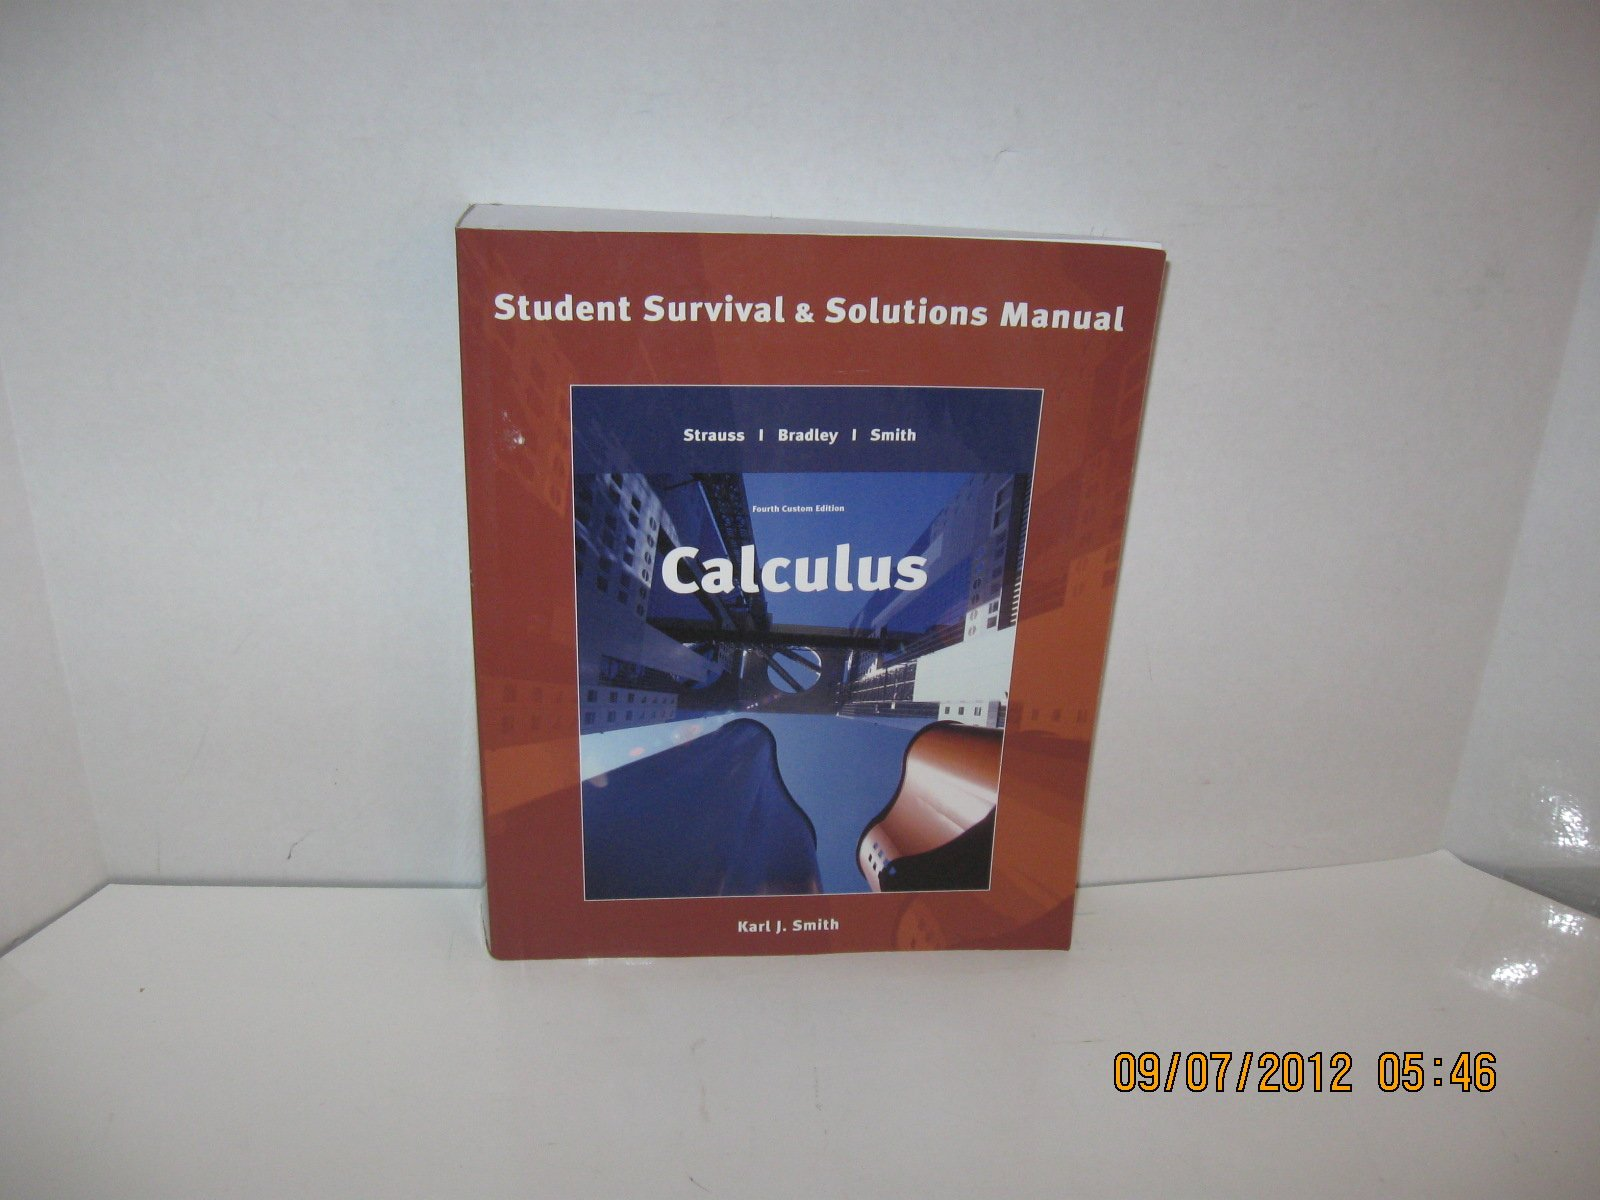 Calculus [Two Books]:Calculus, Student Survival & Solutions Manual and  Calculus, Student Mathematics Handbook and Integral Table: Karl J. Smith:  Amazon.com: ...